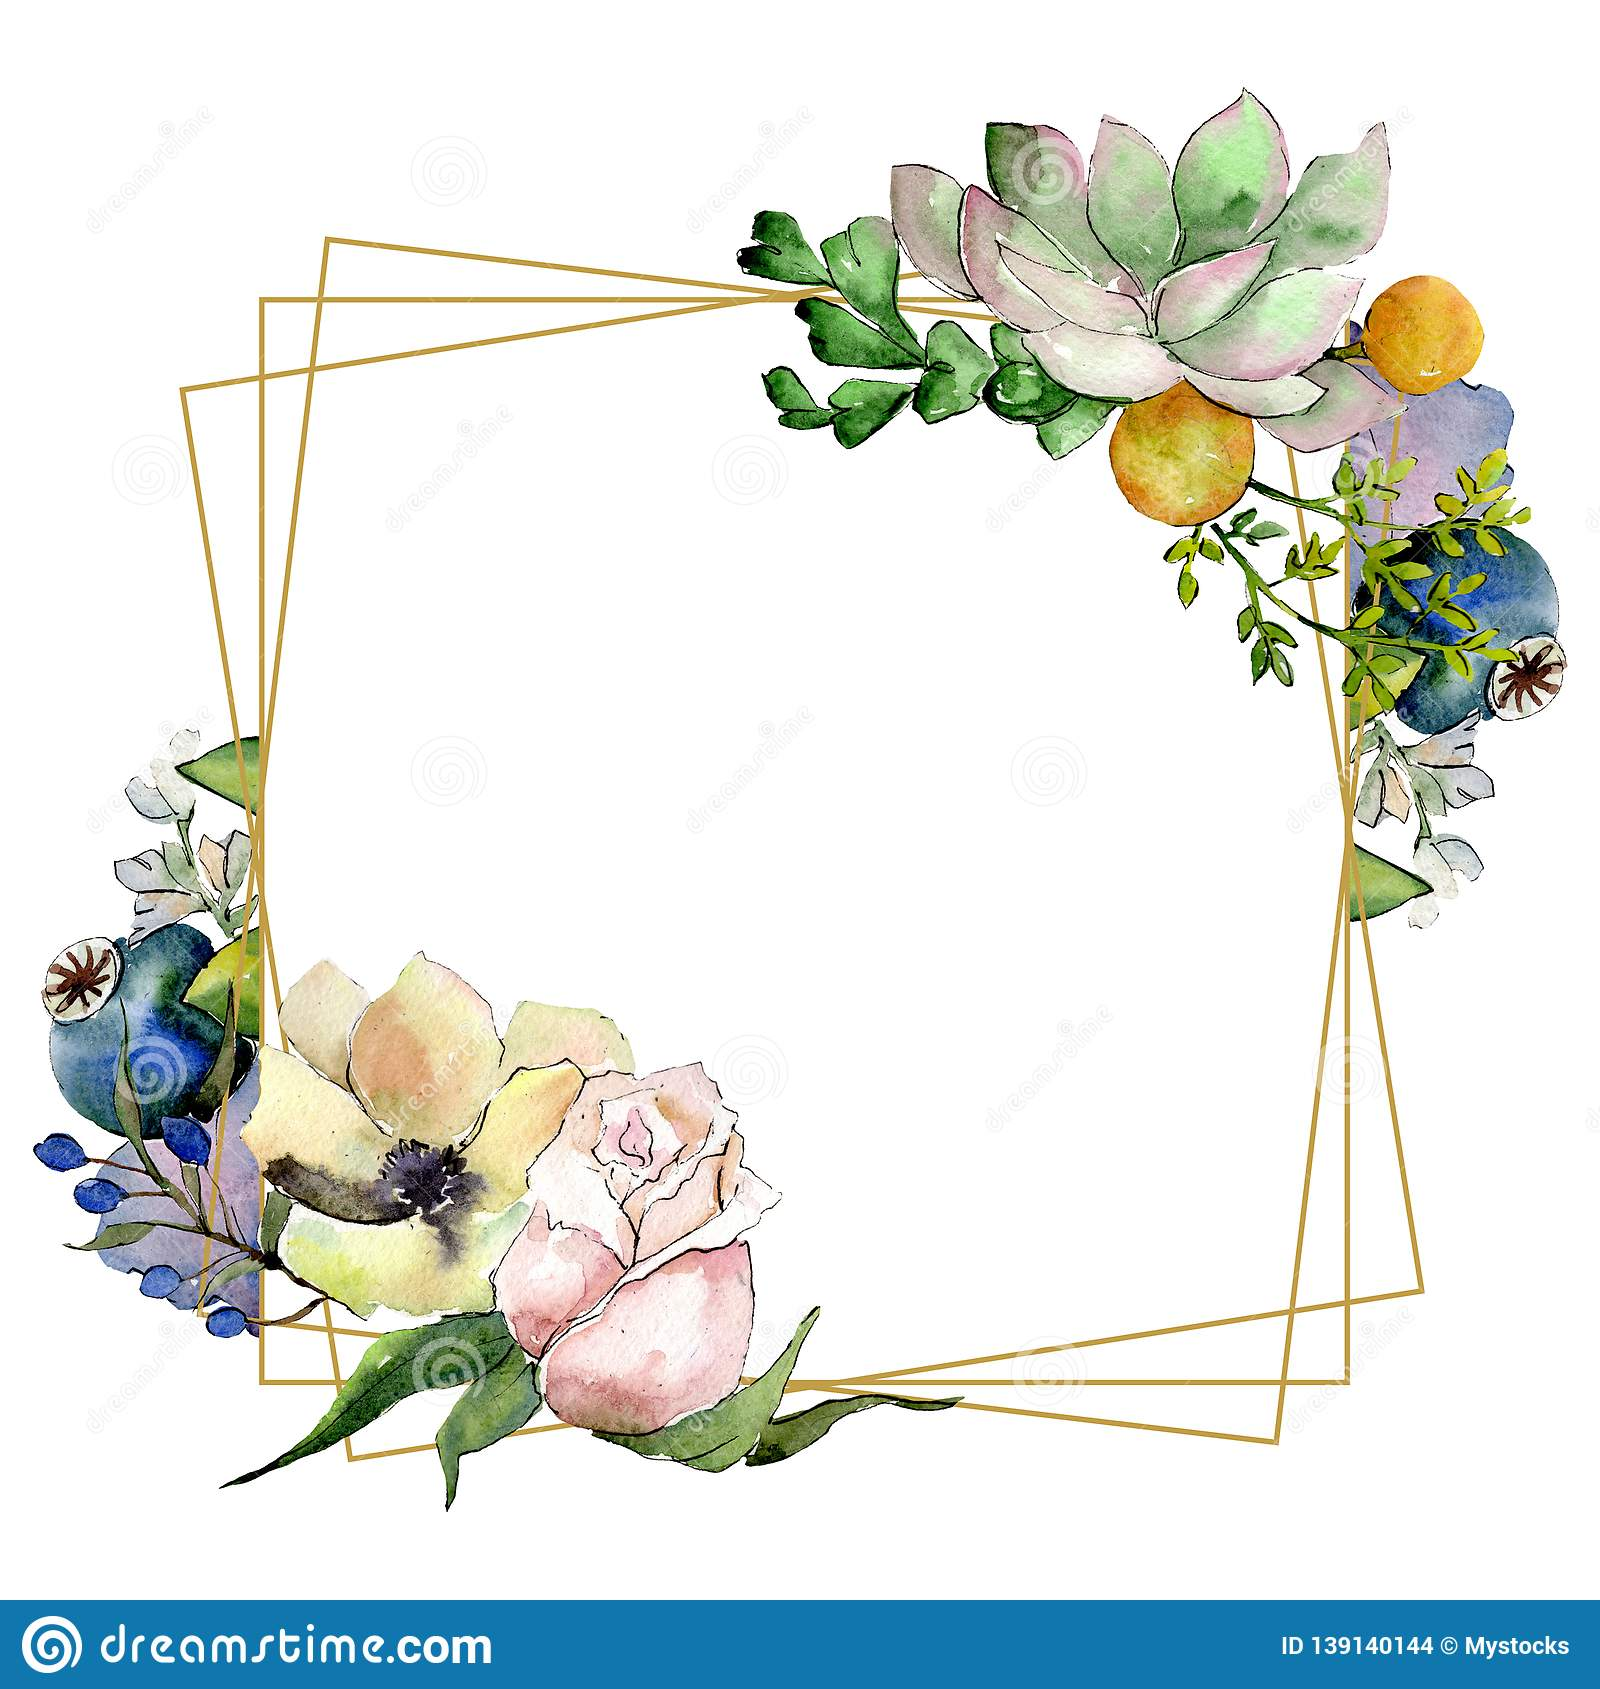 Bouquets With Succulent Botanical Flowers Watercolor Background Illustration Set Frame Border Crystal Ornament Square Stock Illustration Illustration Of Blue Garden 139140144